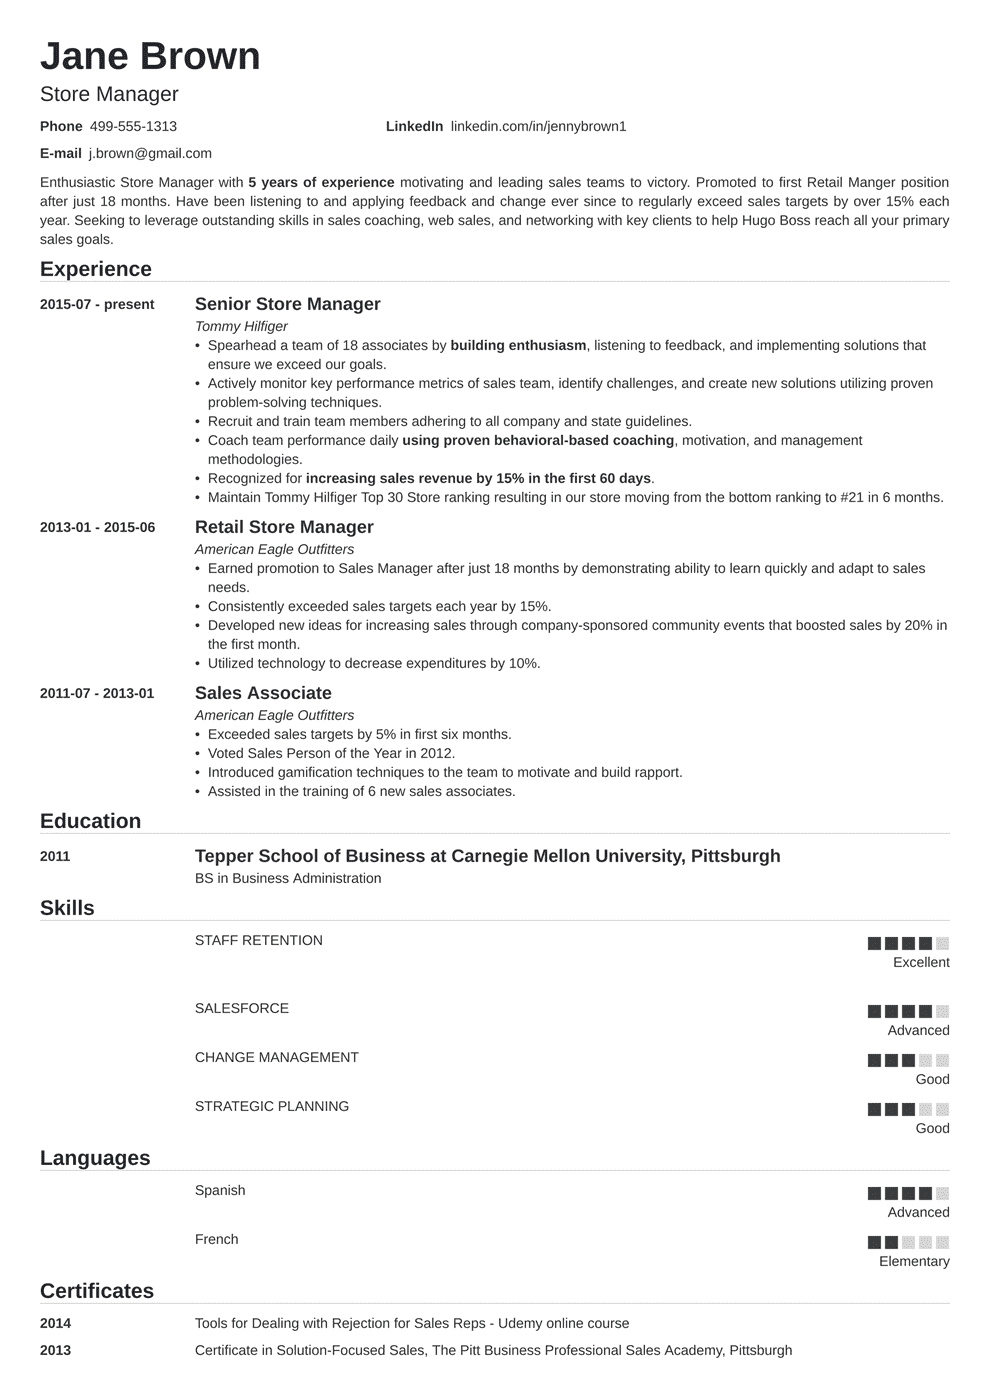 Store Manager Resume Examples Job Description Skills